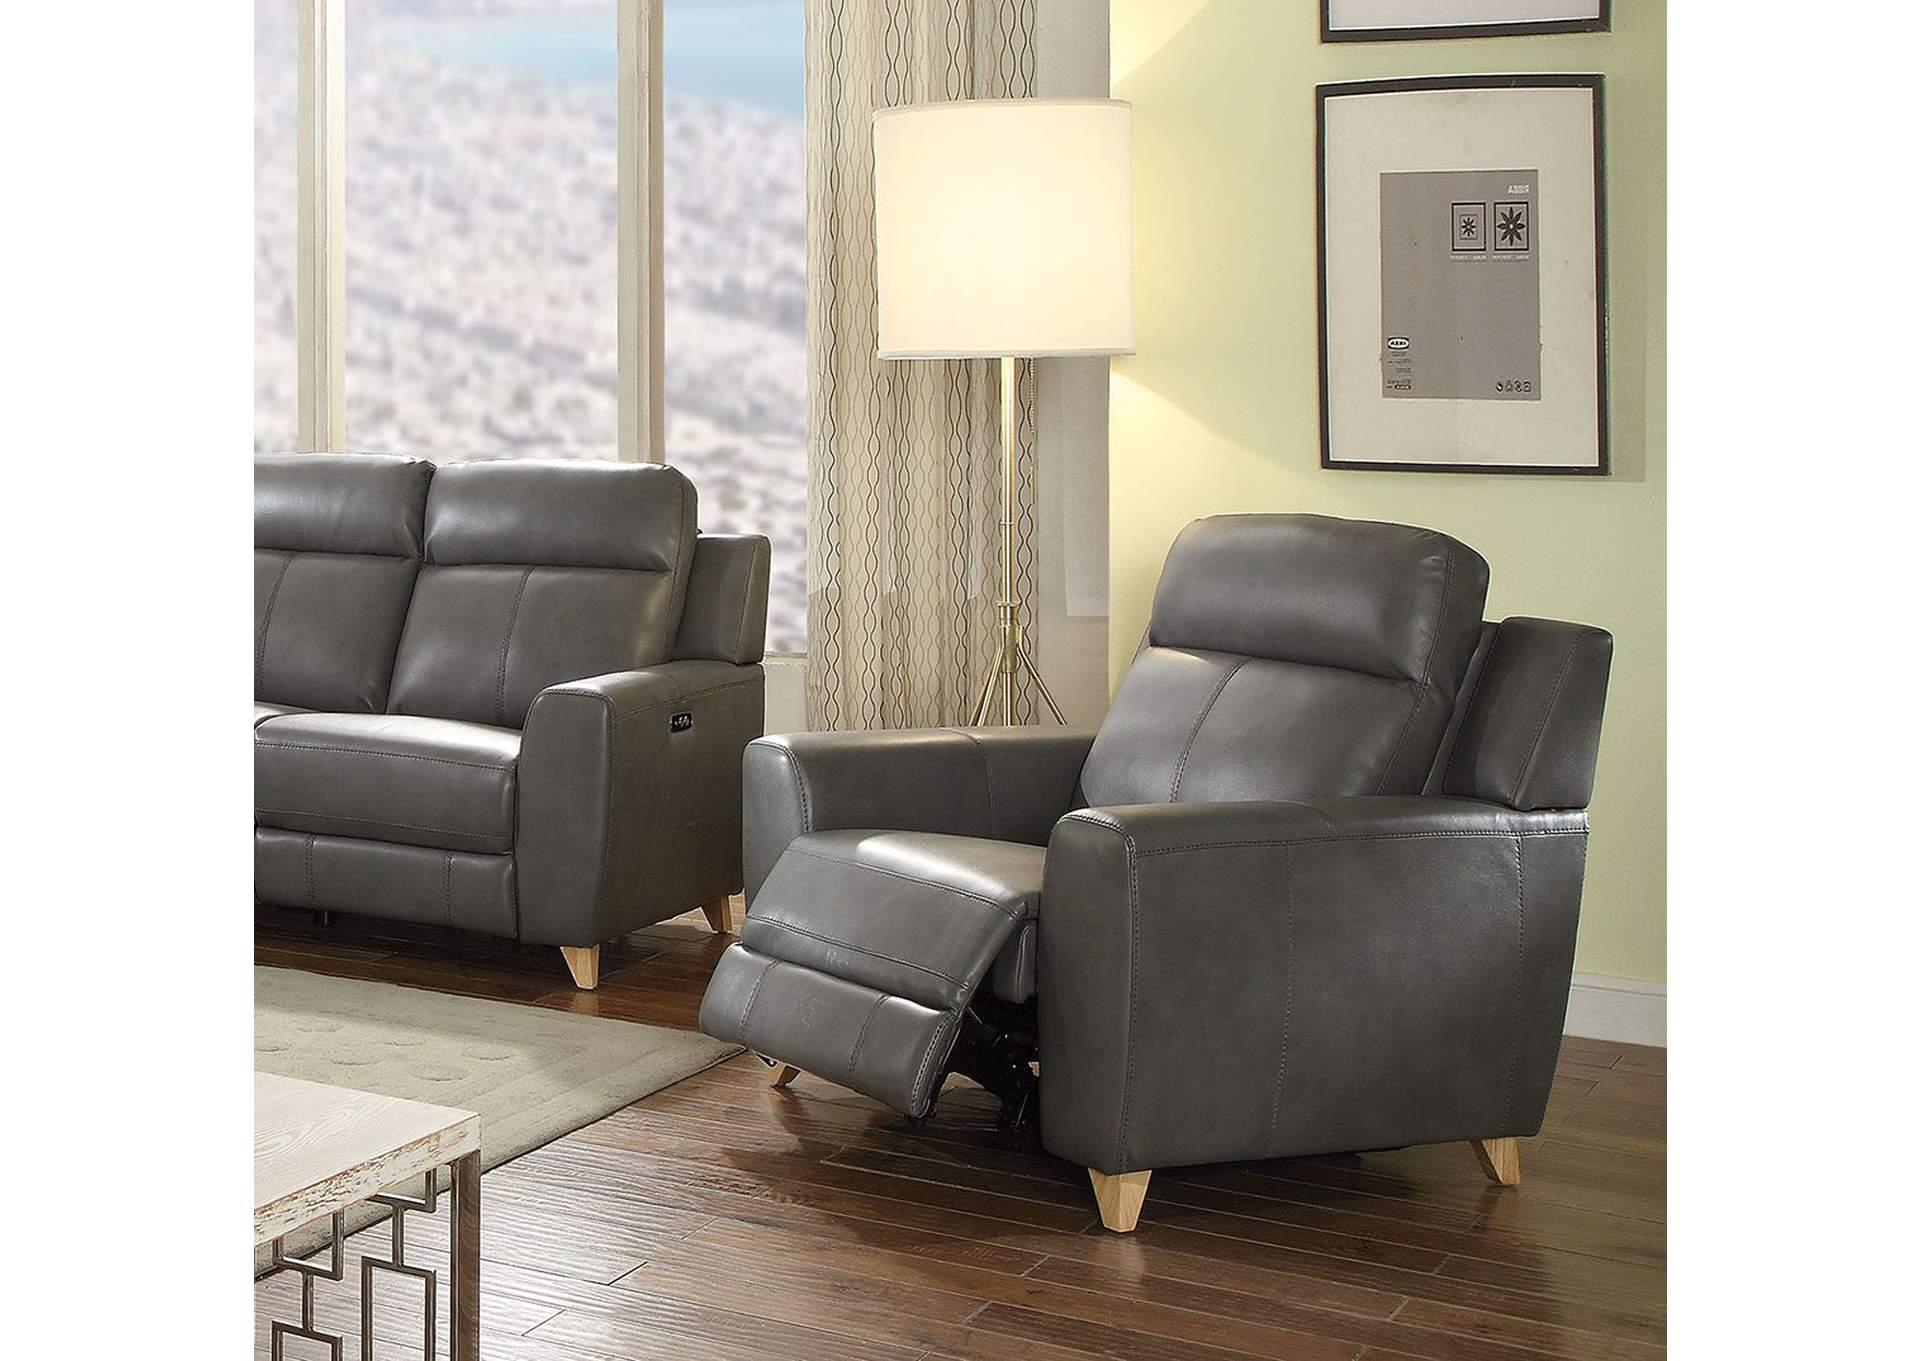 Cayden Gray Power Recliner,Acme